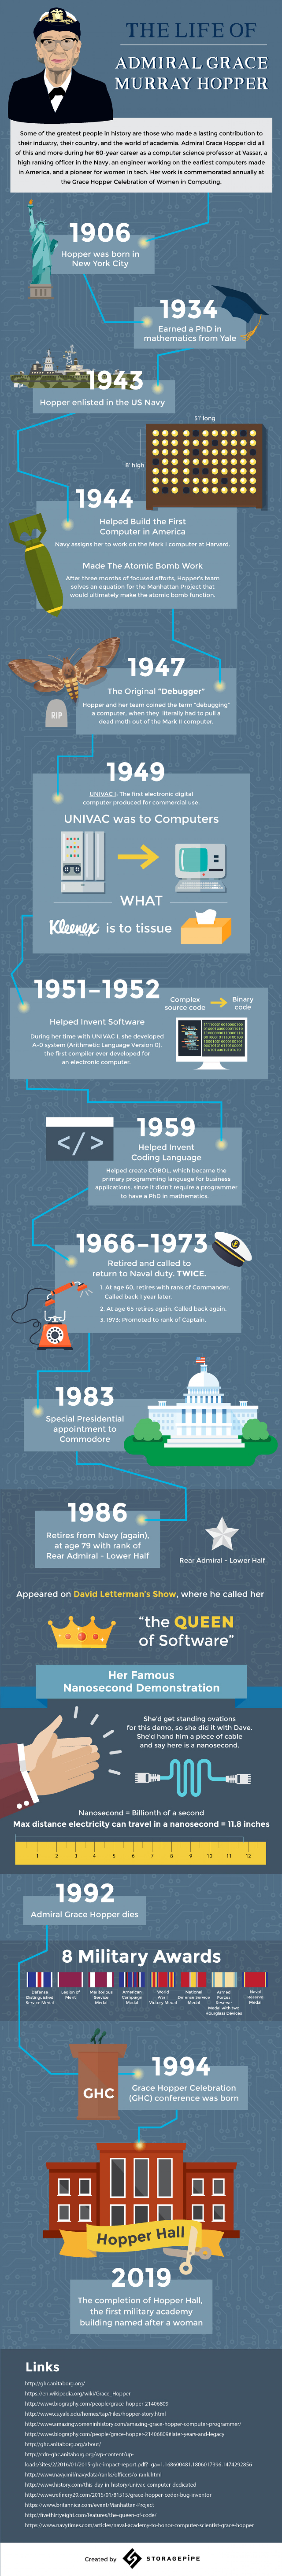 The Life and Times of Admiral Grace Murray Hopper Infographic